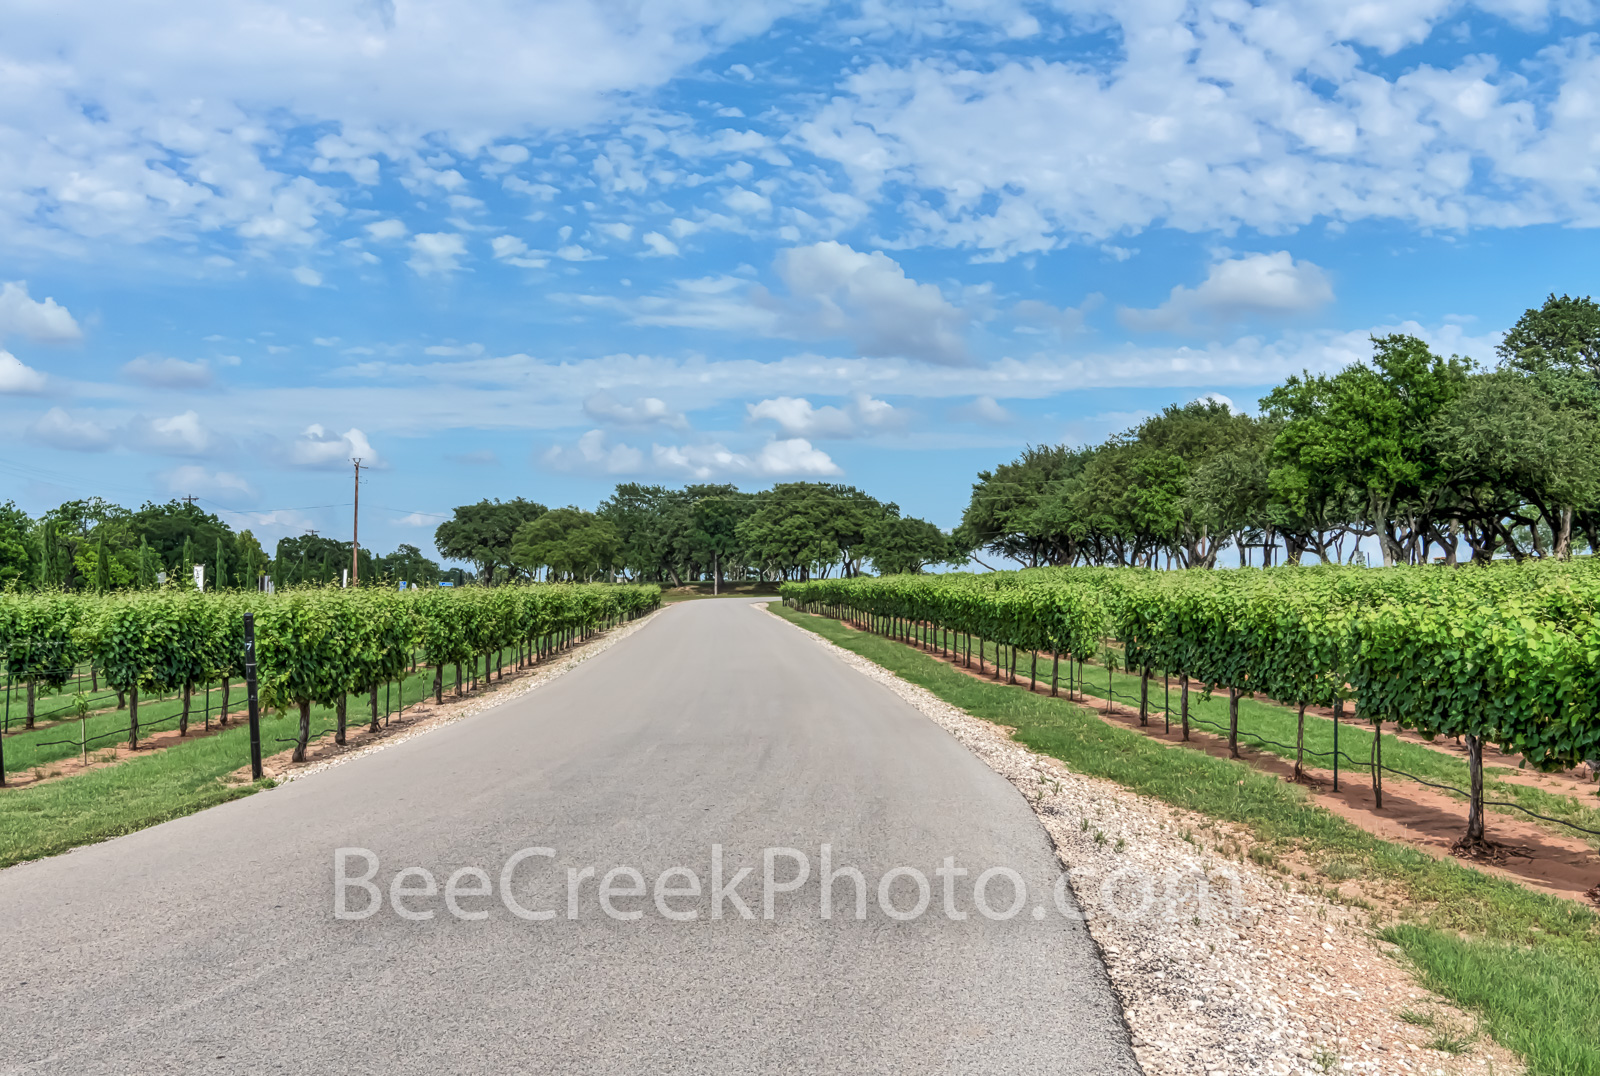 Grape vines, road, hill country, texas, wine tasting, winerys, vines, grapes, plants, landscape, blue sky, texas hill country, grape vine plants, , photo